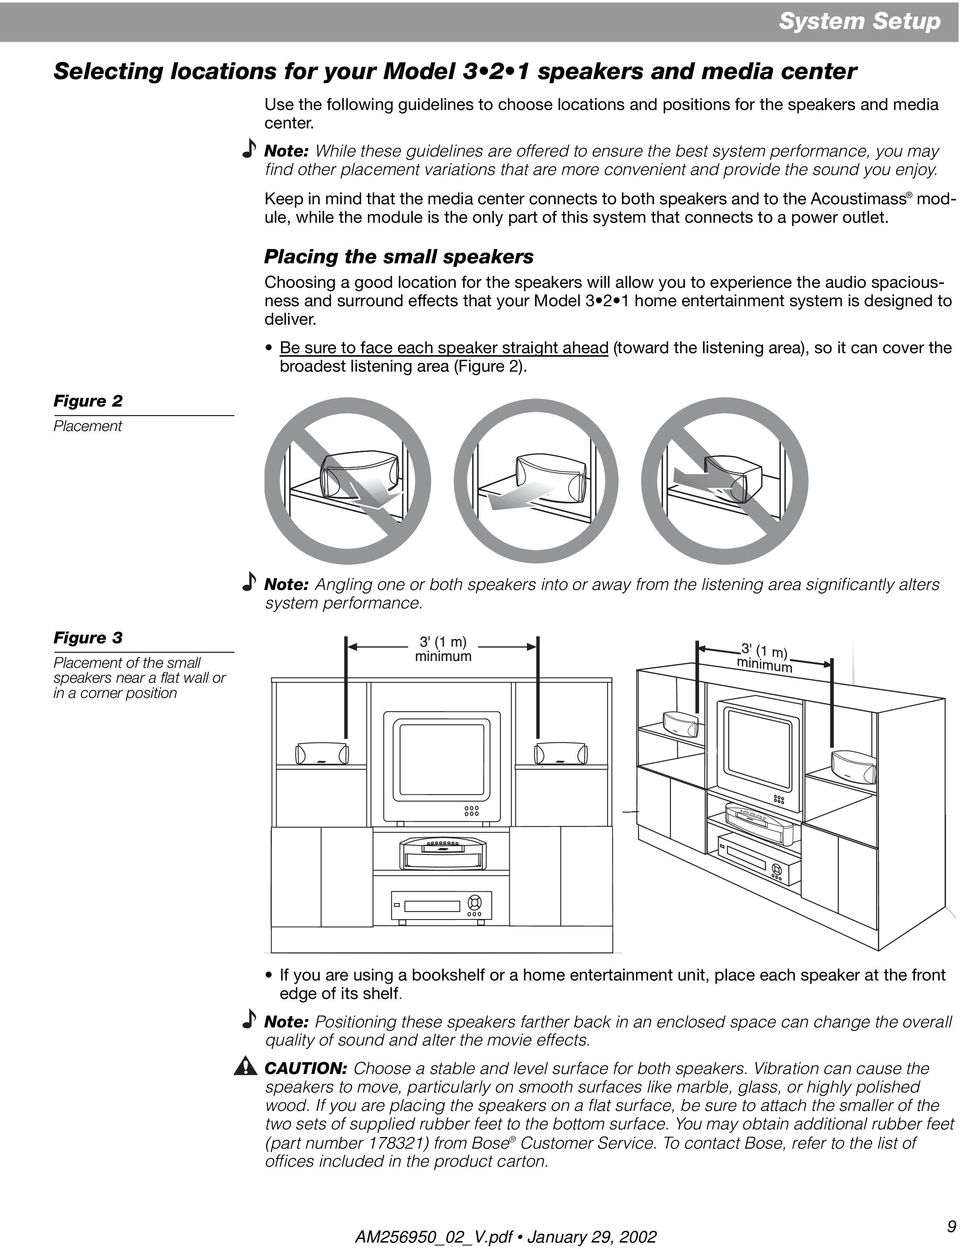 3 2 1 Home Entertainment System Owner S Guide January 29 Pdf Figure Diagram Showing The Placement Of Surround Sound Speakers Keep In Mind That Media Center Connects To Both And Acoustimass Module